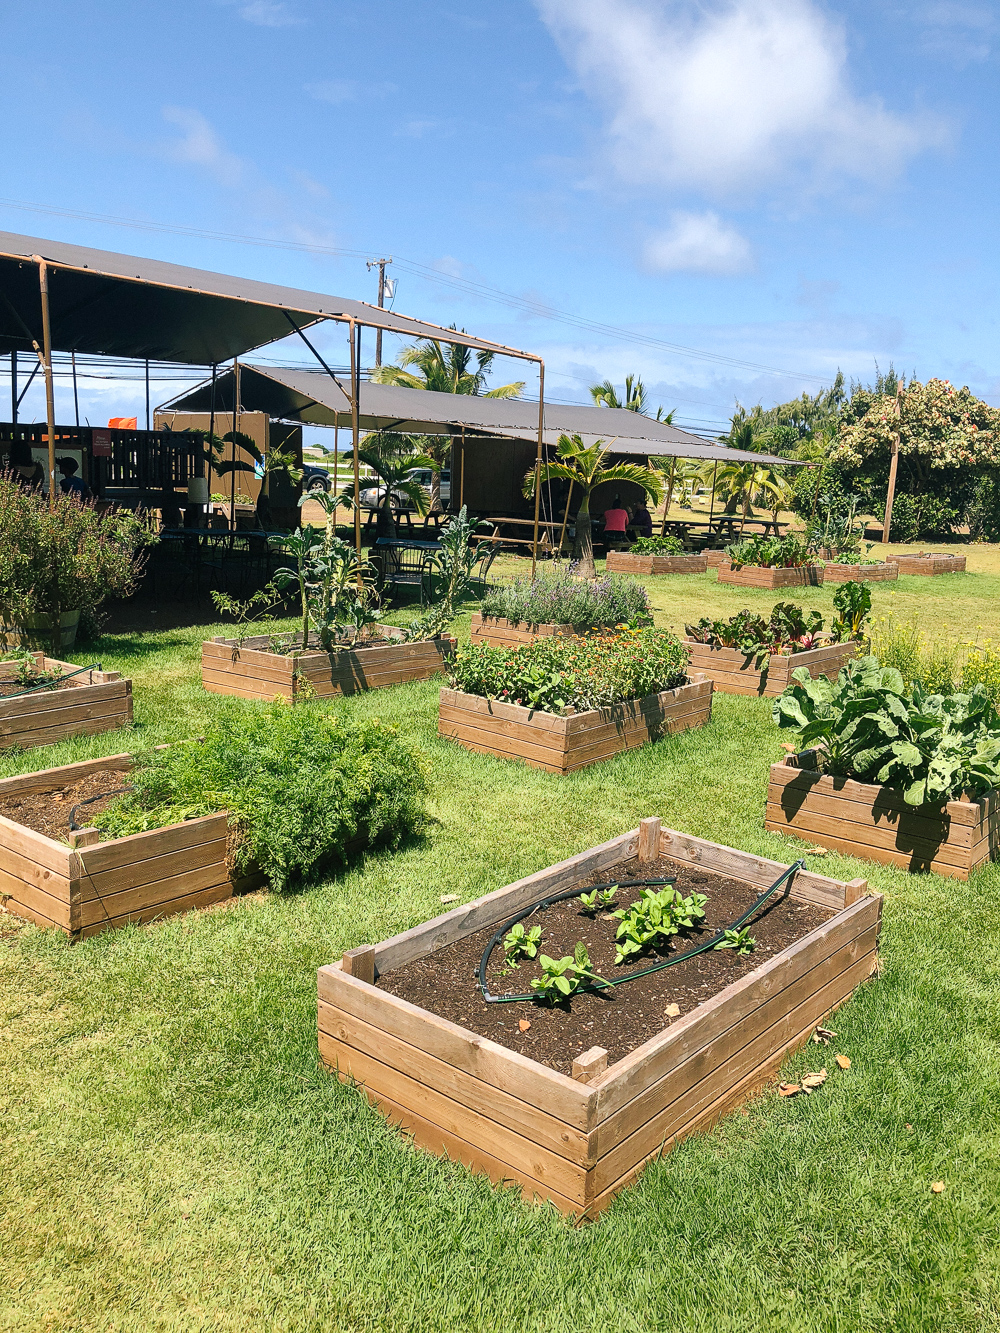 The Ultimate Oahu Travel Guide for the Adventurer - Kahuku Farms Oahu North Shore | Sunshine Style